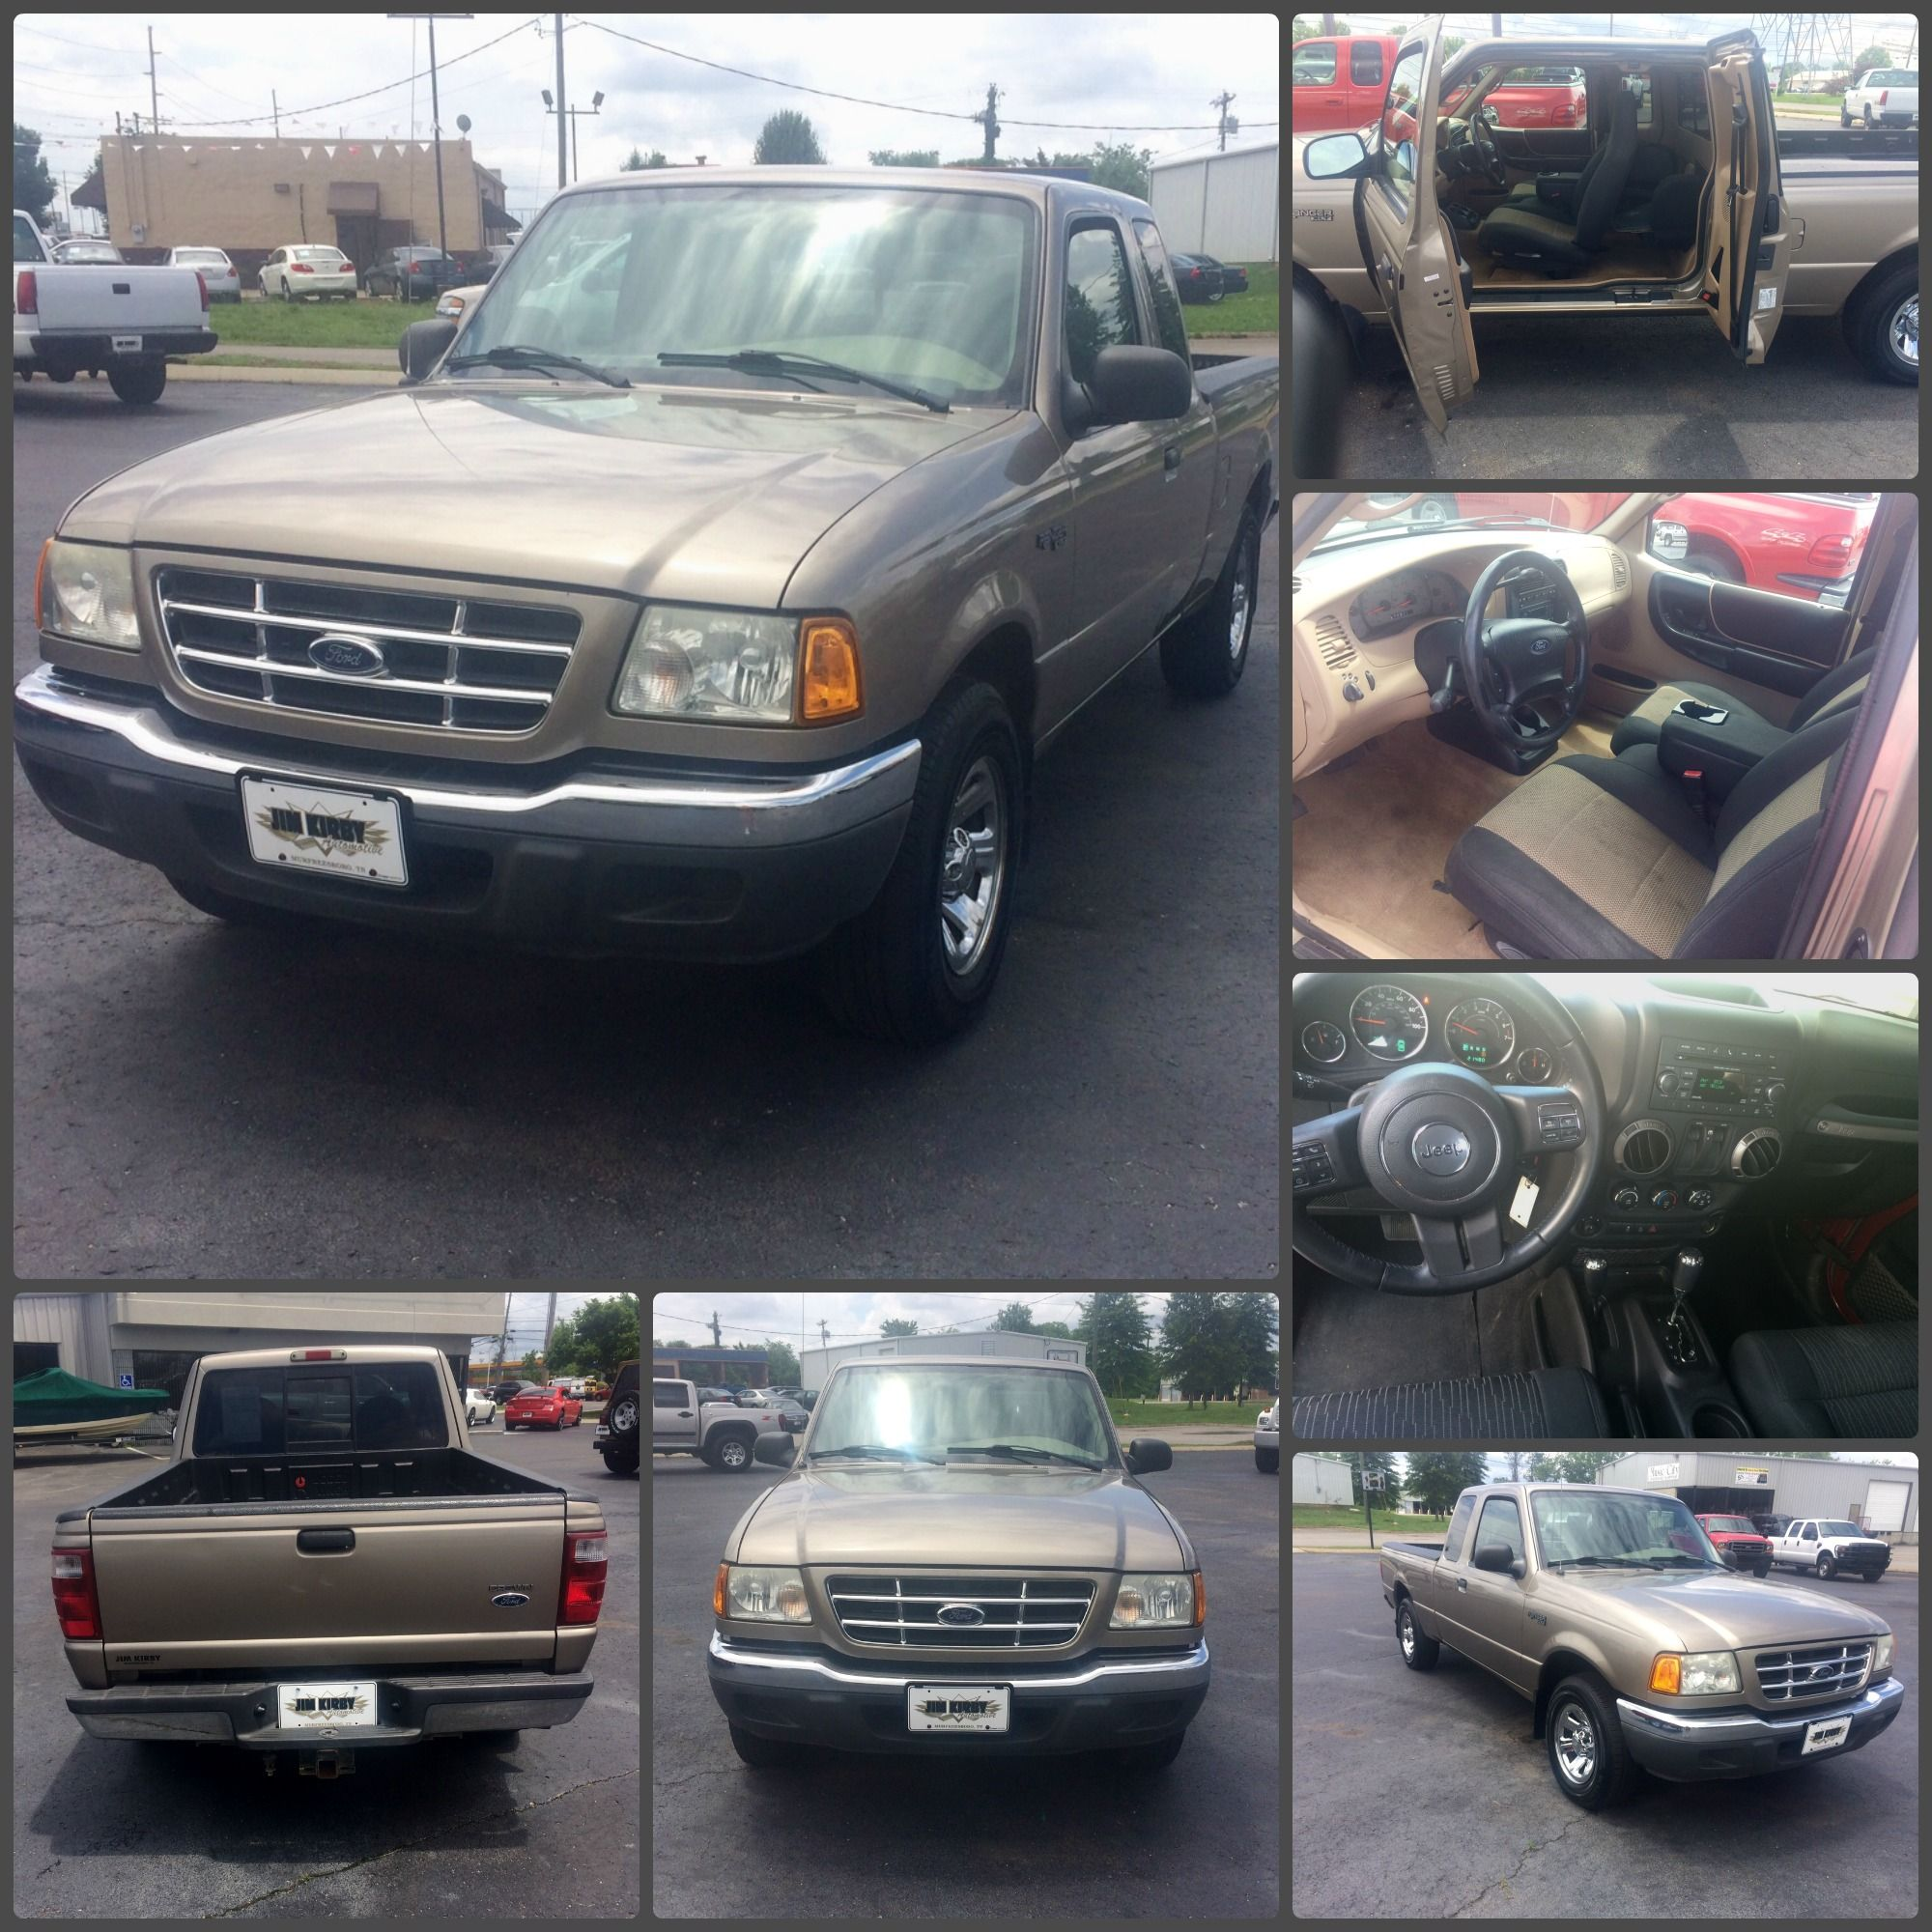 Ford Friday Our Vehiclespotlight Today Is A 2003 Ford Ranger Extended Cab Automatic With Bed Liner T 2003 Ford Ranger Ford Ranger Heavy Duty Trucks